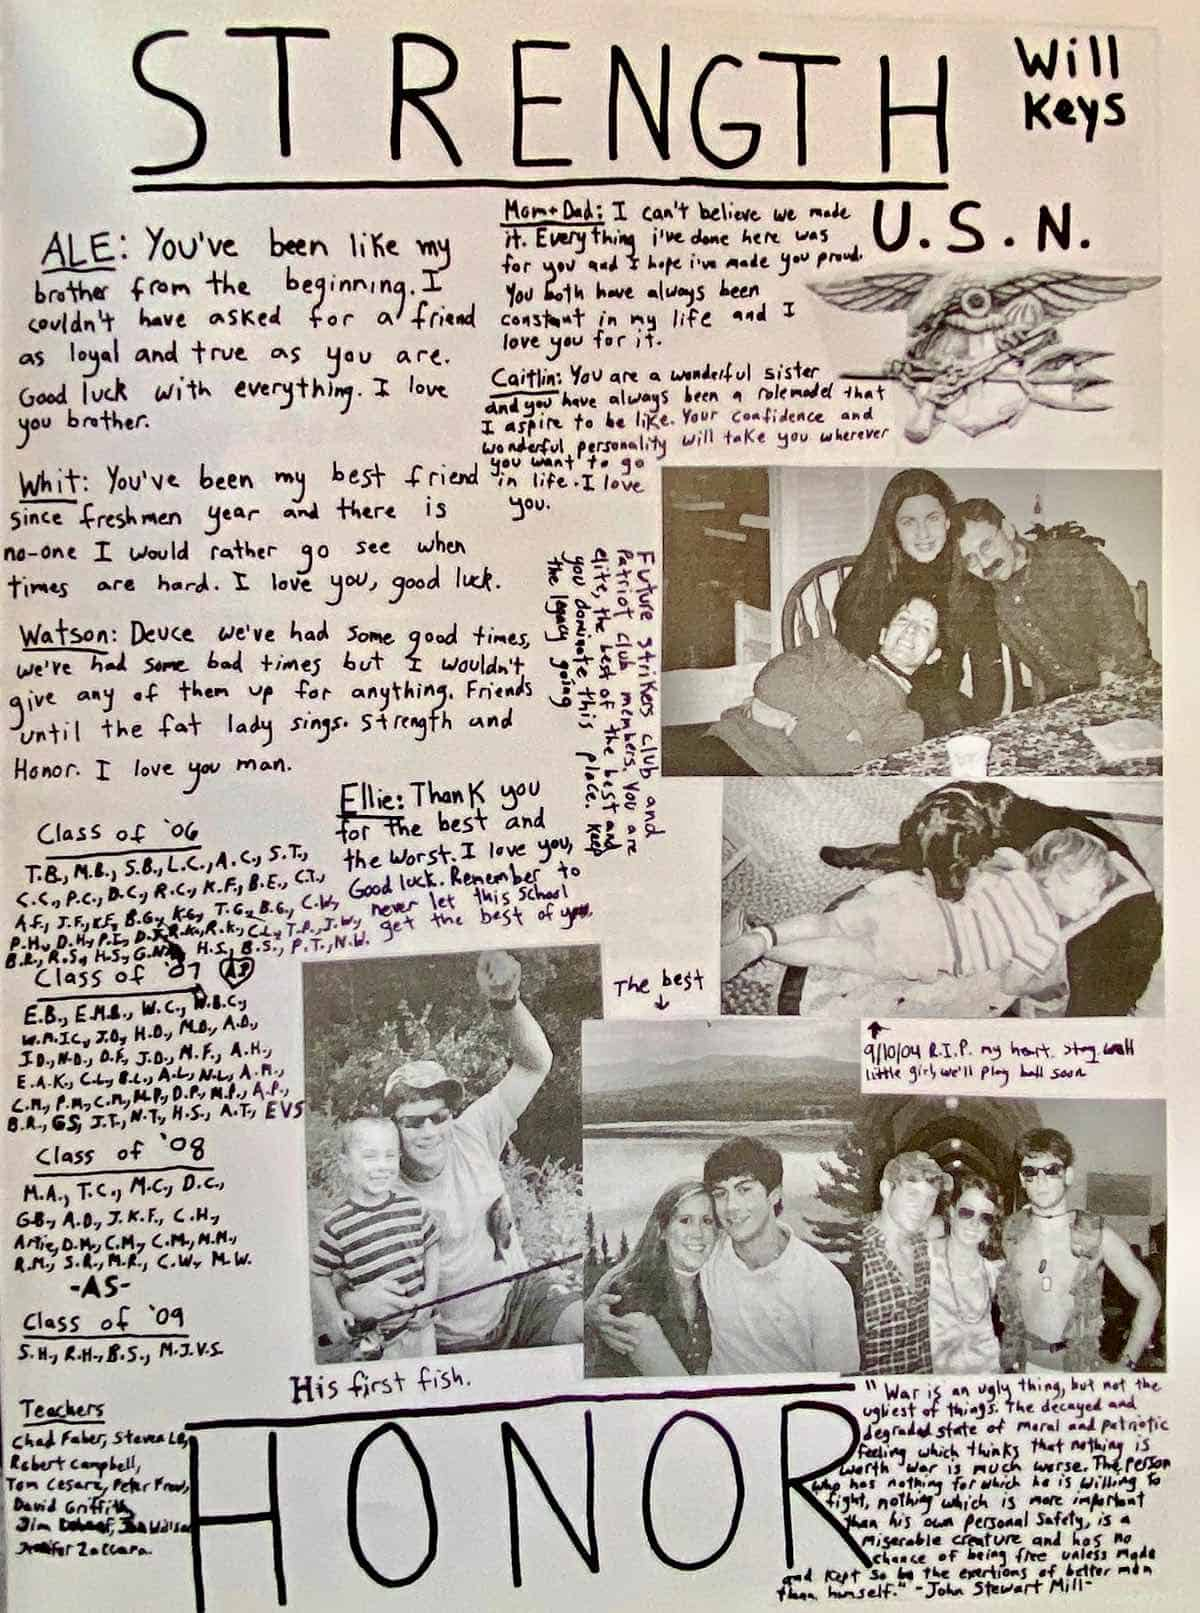 Will's yearbook page. I love all the things he wrote on his yearbook page.